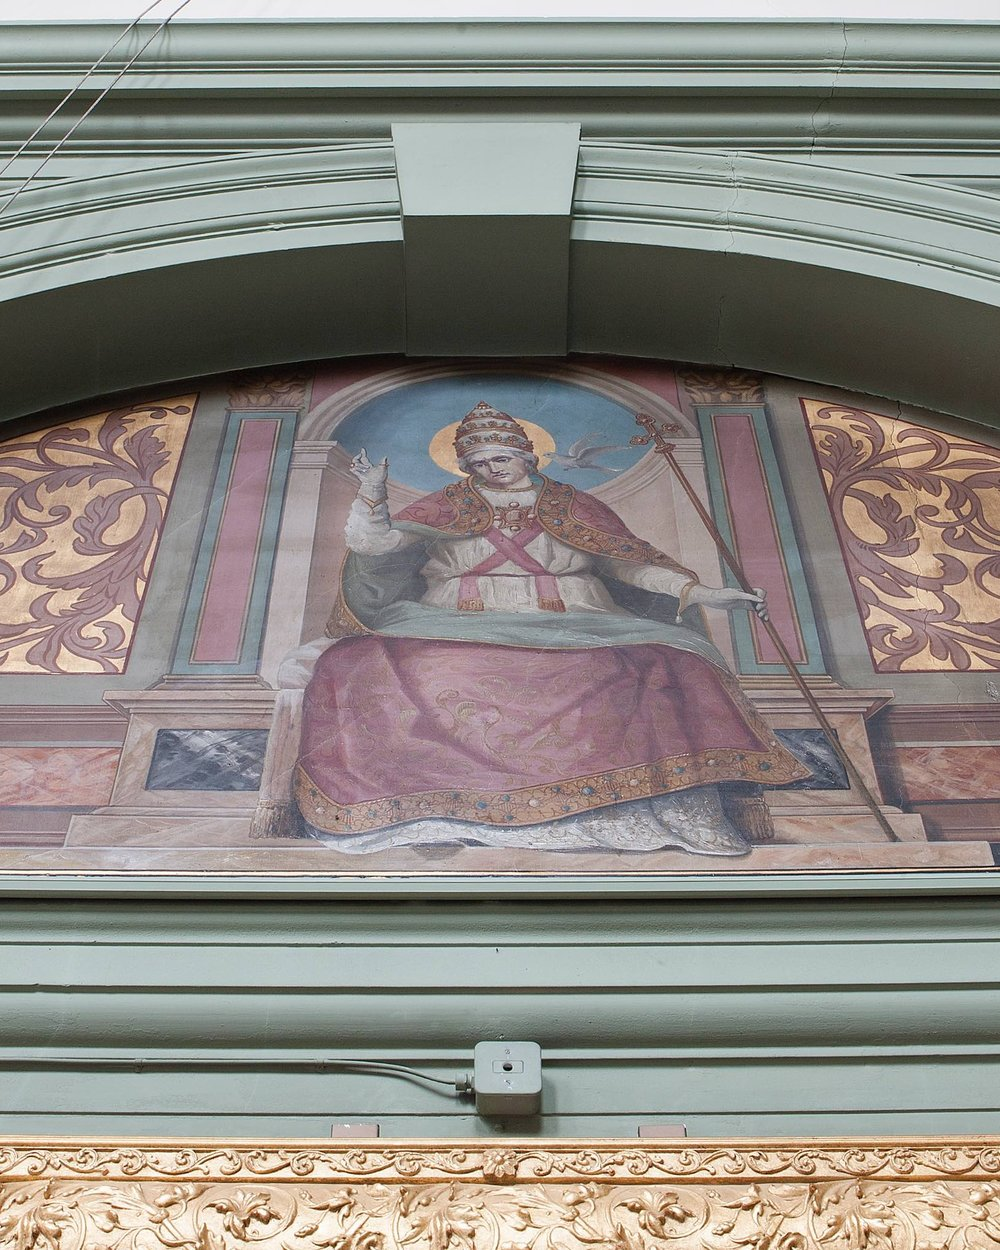 "Pope St. Gregory the Great - Born in Rome, the son of a Senator, St. Gregory gave up a political career, having been Prefect of Rome, for the monastic life.  He became abbot in 585, was appointed one of the seven deacons of Rome and papal legate to Constantinople.  He succeeded to the papacy in 590.  He promoted sacred music, giving his name to ""Gregorian chant"", and sent monks from his old monastery, led by St. Augustine of Canterbury, to evangelise the Angles of Britain.  He died in 604 and his feast is celebrated on September 3rd, the date of his election as pope."